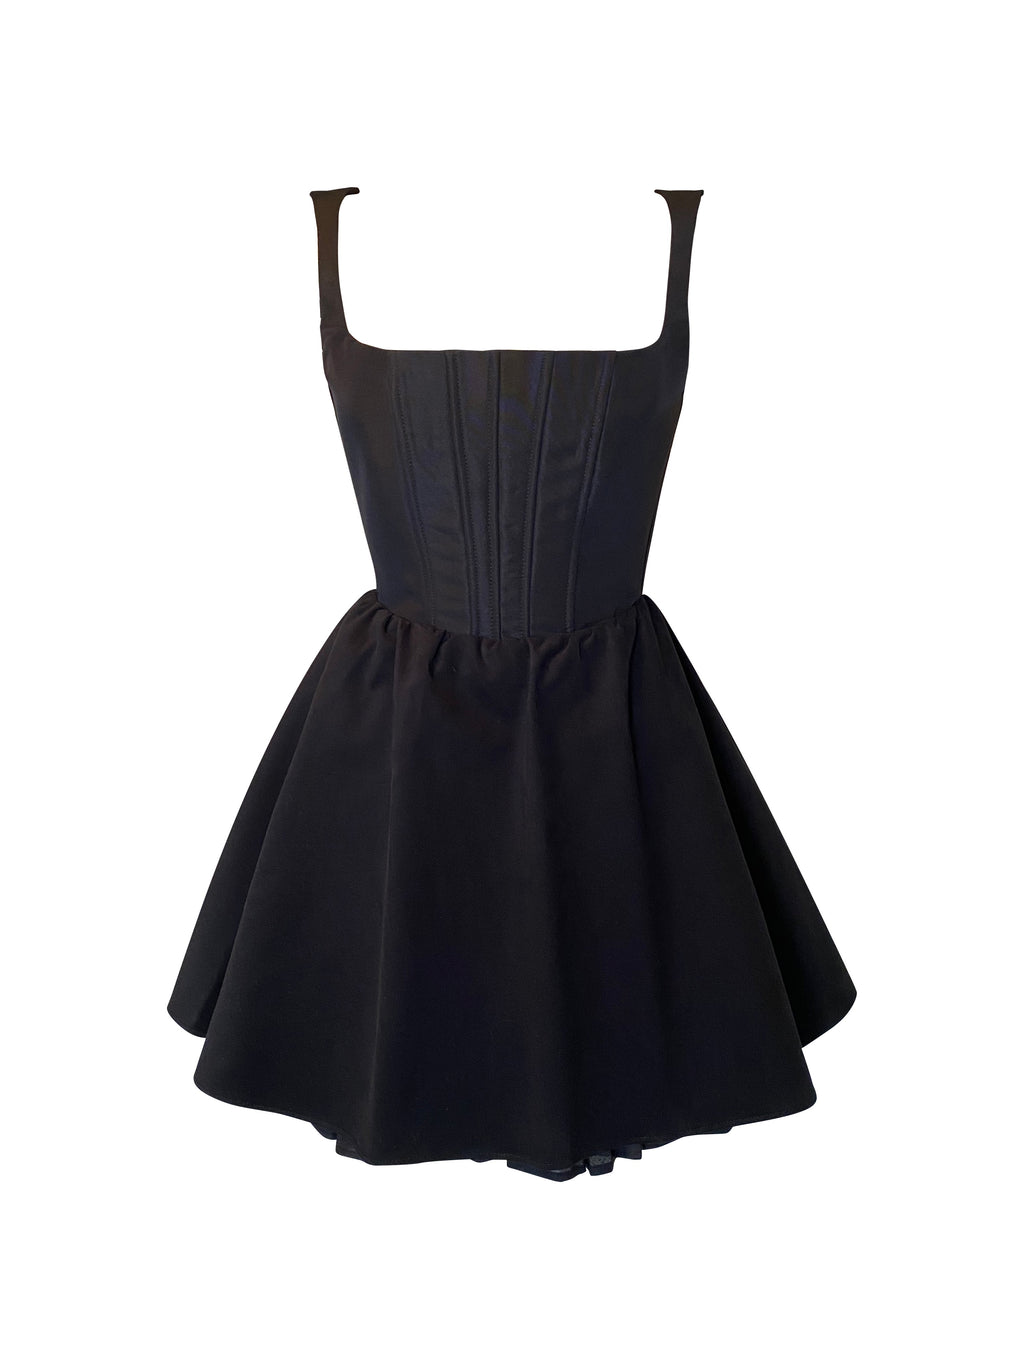 Annie Dress - Black